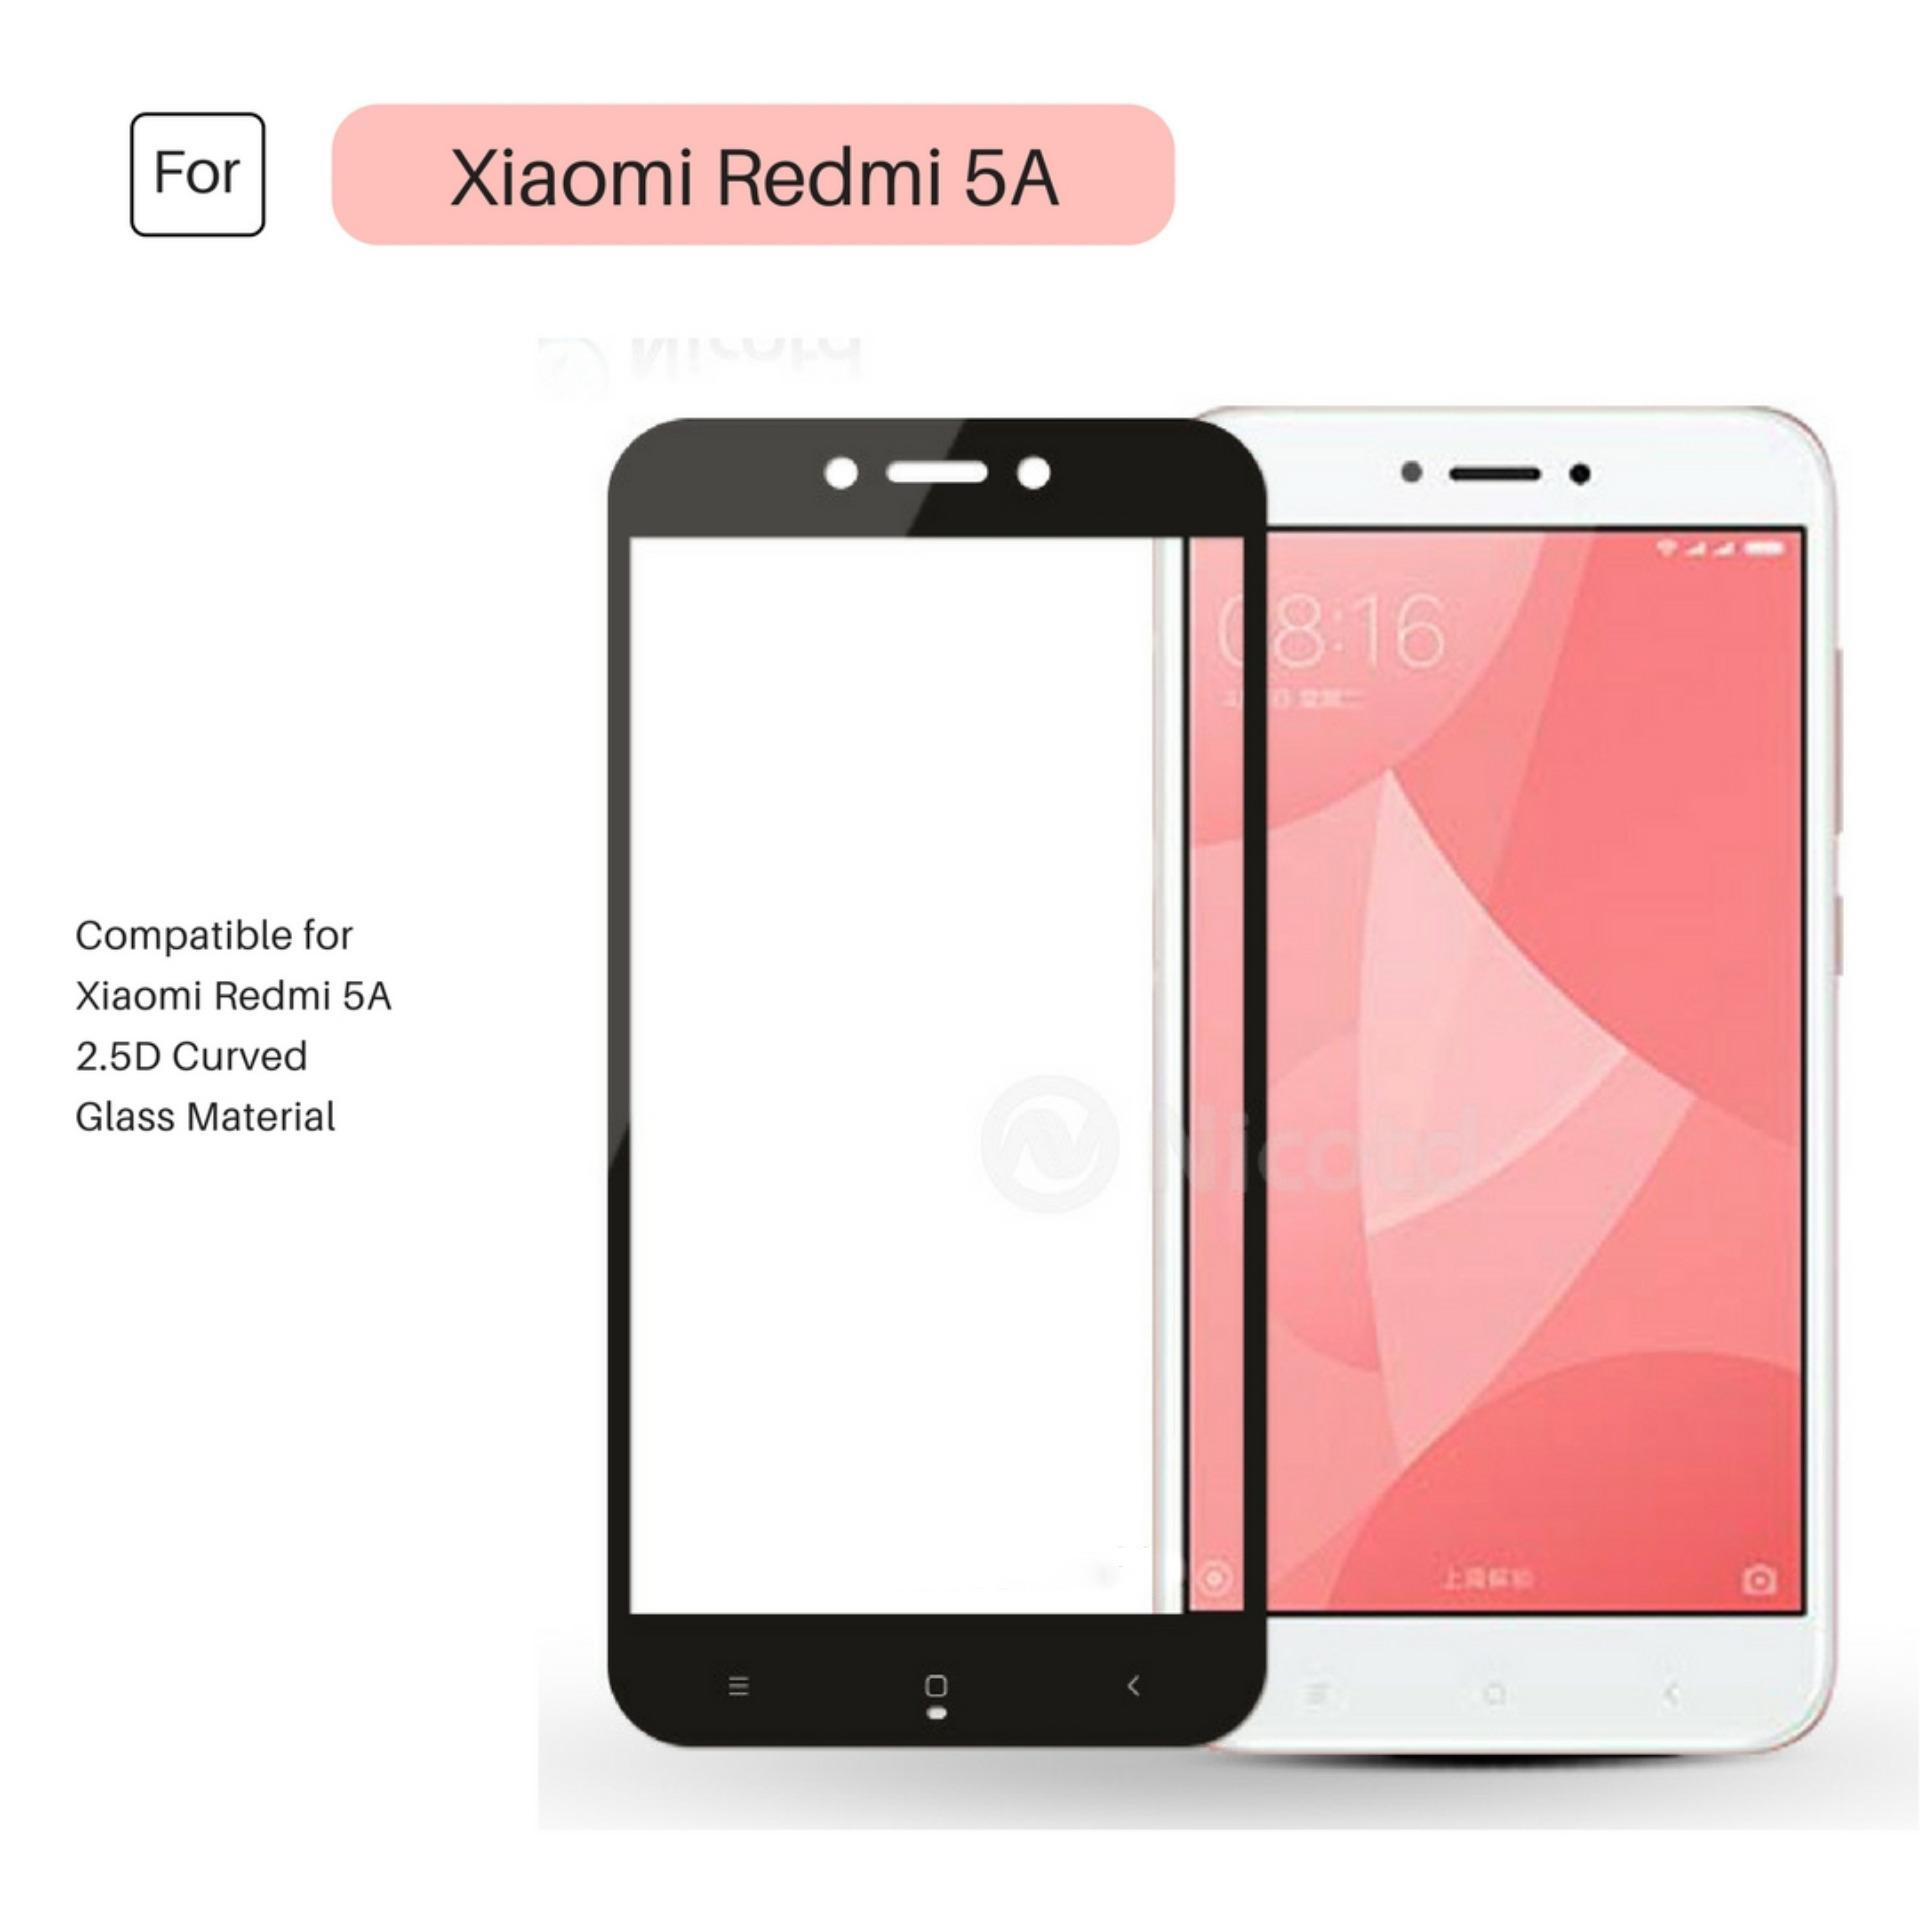 ... Kaca Anti Gores - Bening. Source · Tempered Glass Warna Full Corning Screen Protector For Xiaomi Redmi 5A - Hitam